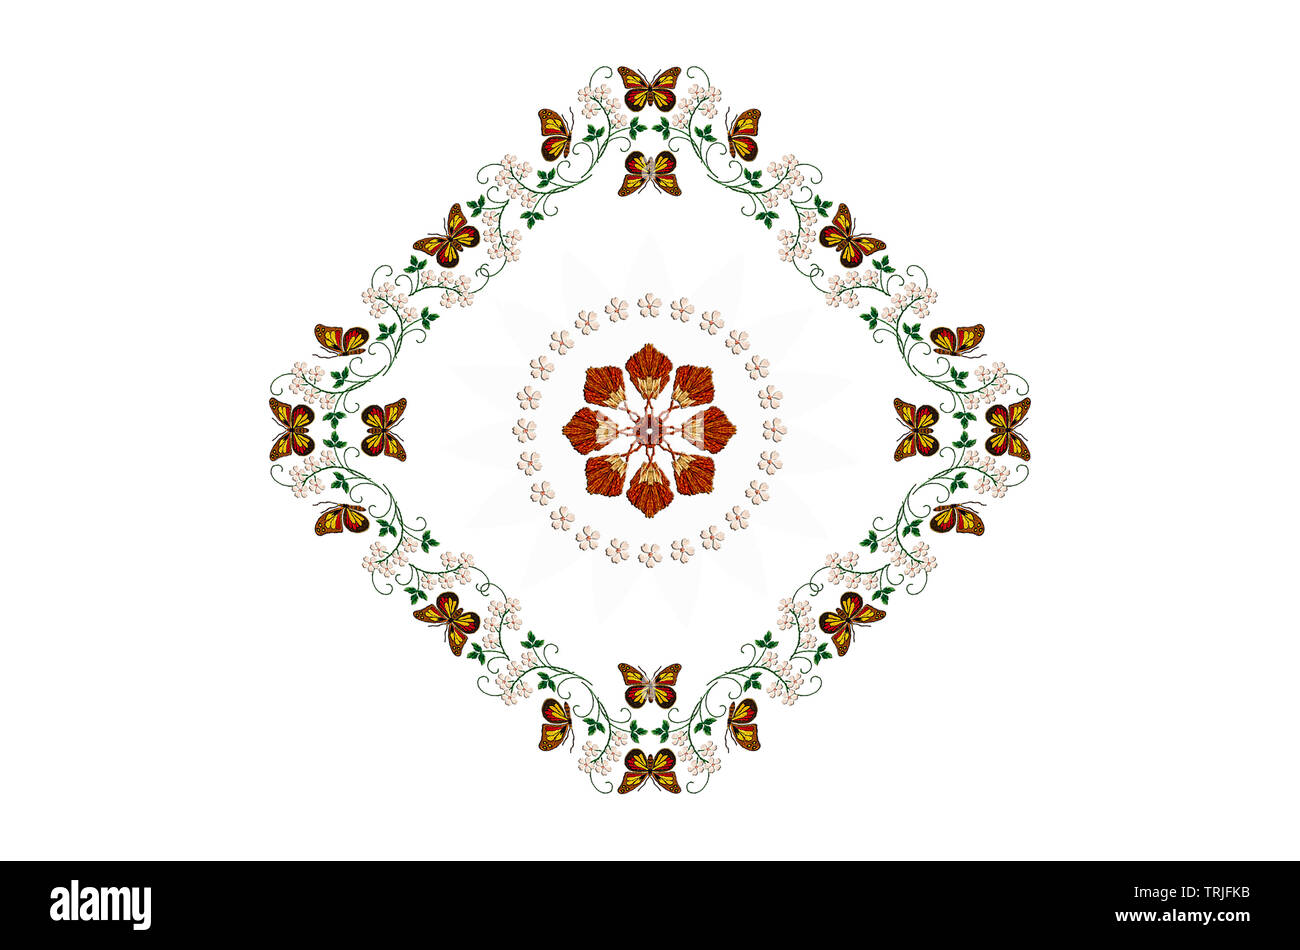 Diamond-shaped frame with embroidered butterflies on stems with leaves and white flowers,and with a circle of white flowers on a white background - Stock Image